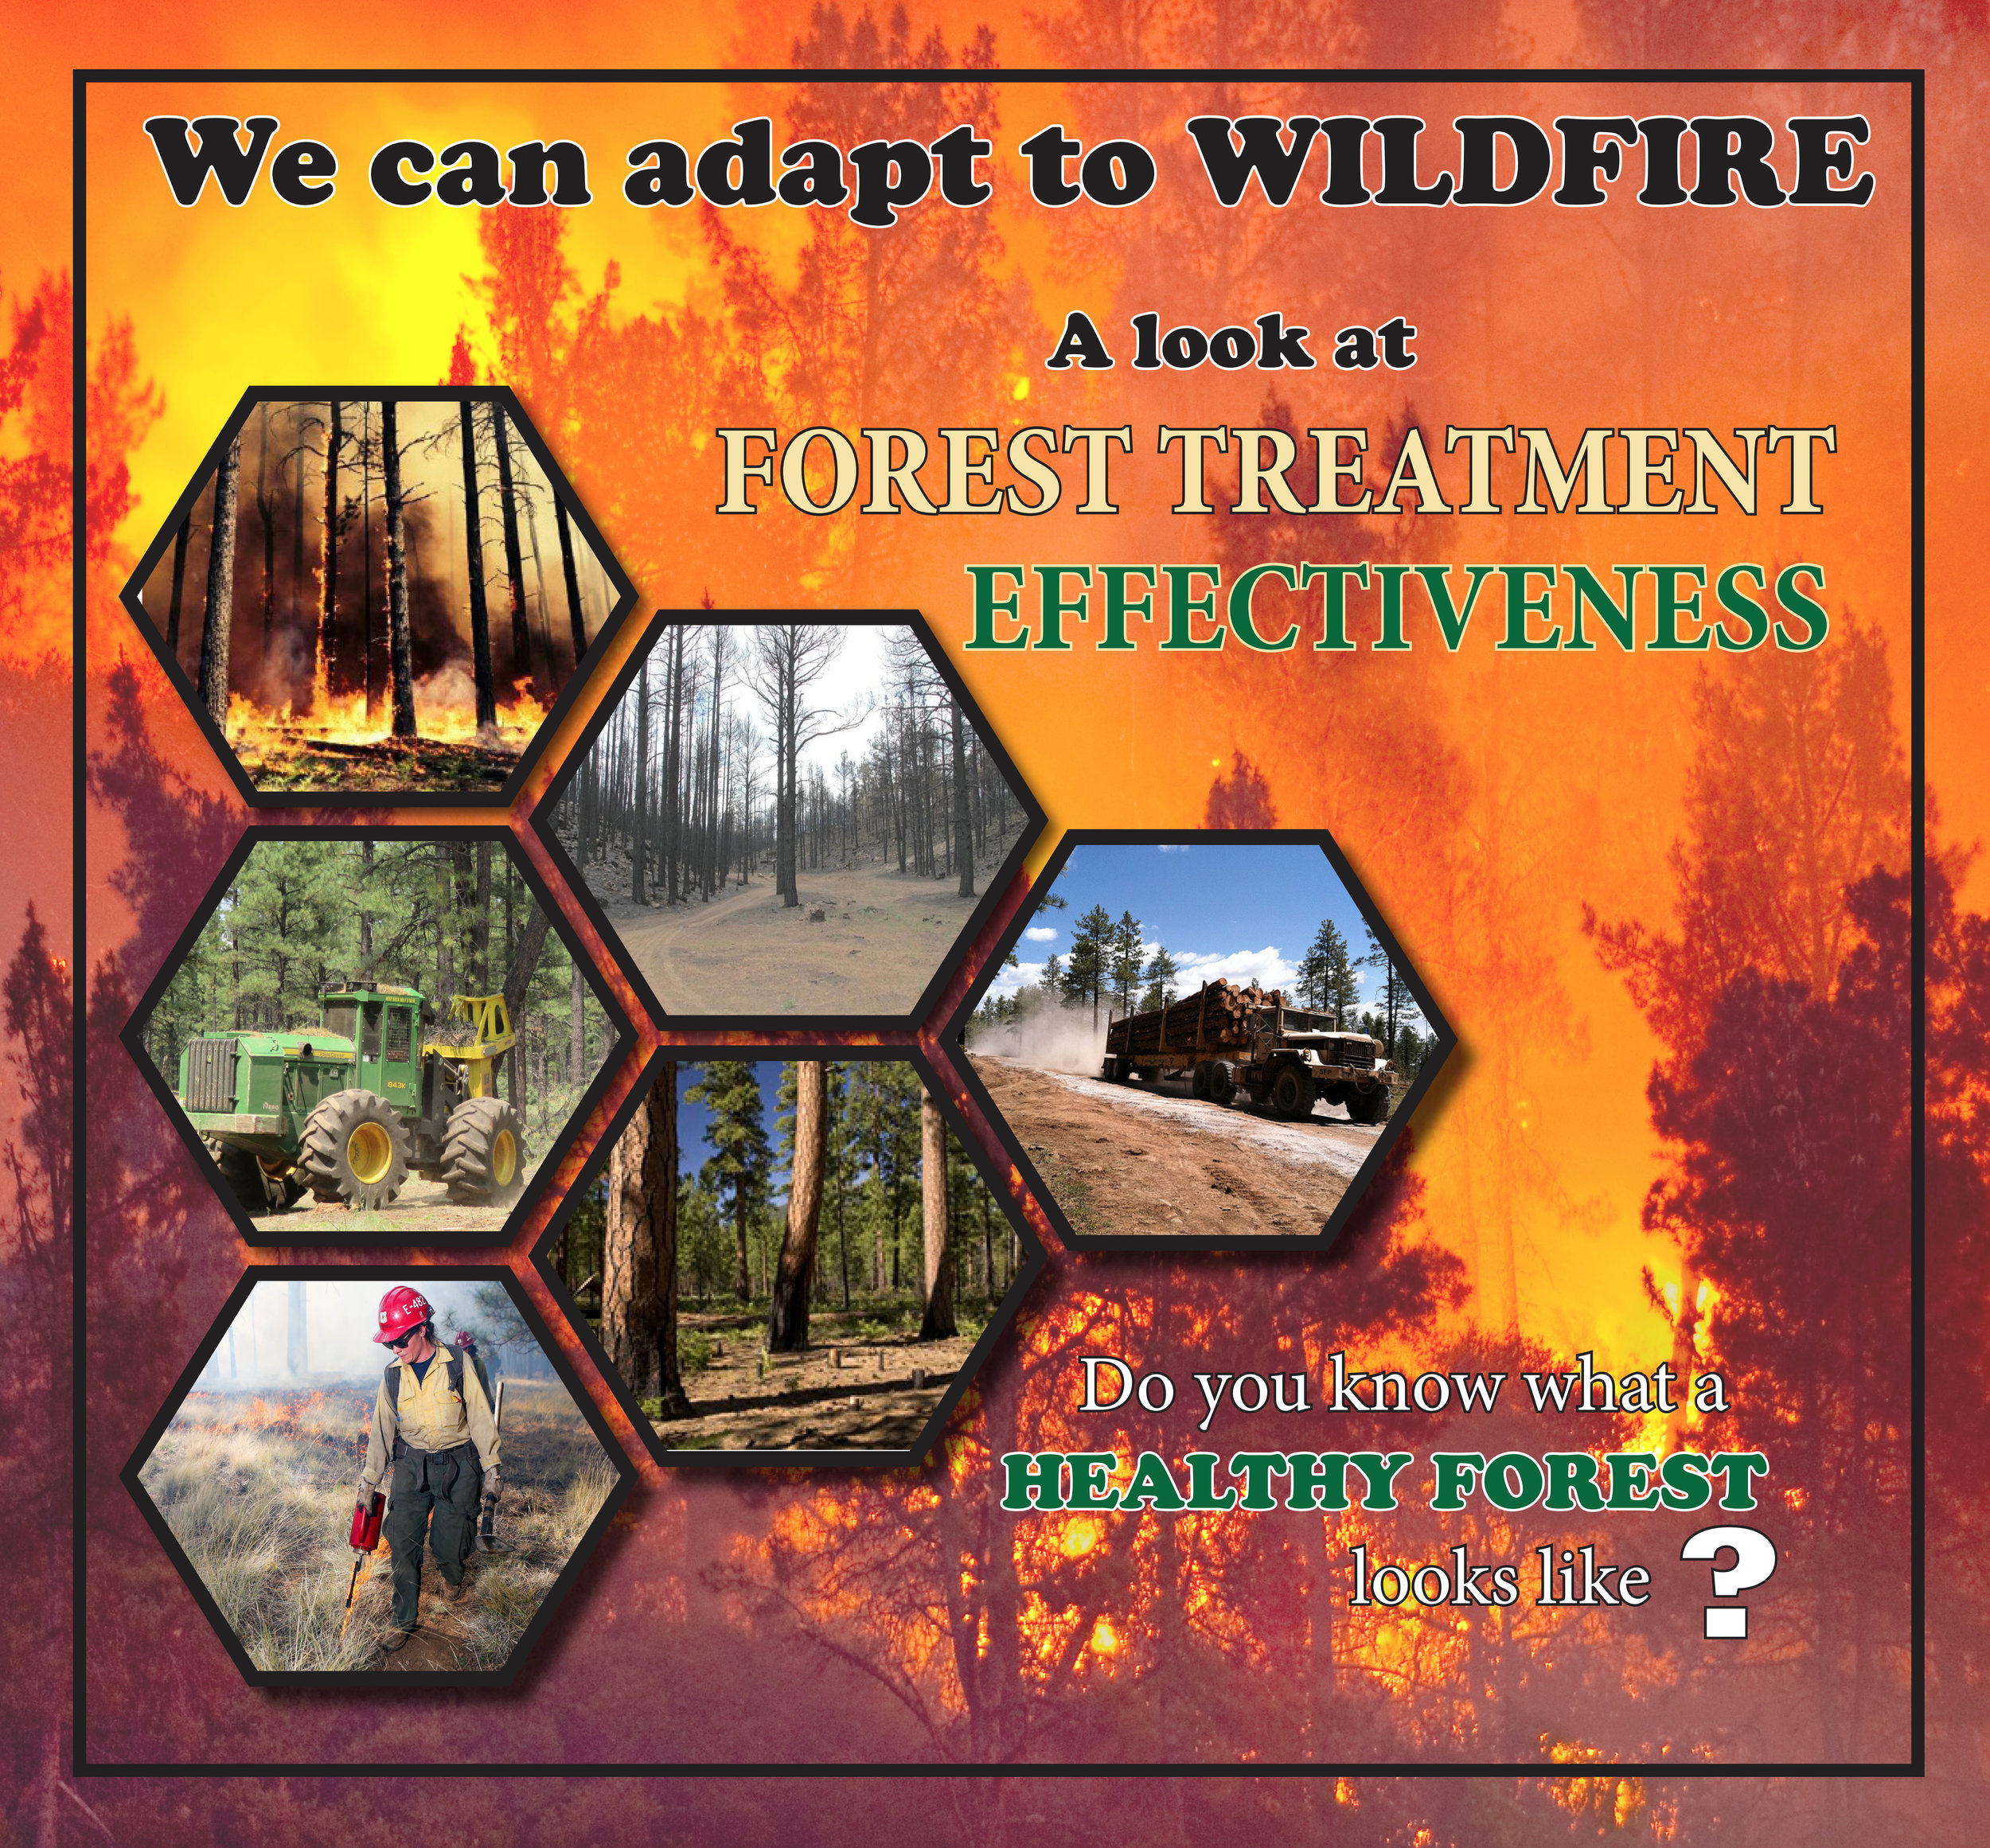 Figure 4. Wildfire Educational Graphic. Greater Flagstaff Forests Partnership. Treatment effectiveness p1.pdf;  http://azfac.org/2018/03/09/a-look-at-forest-treatment-thinning-trees-prescribed-fire-effectiveness/